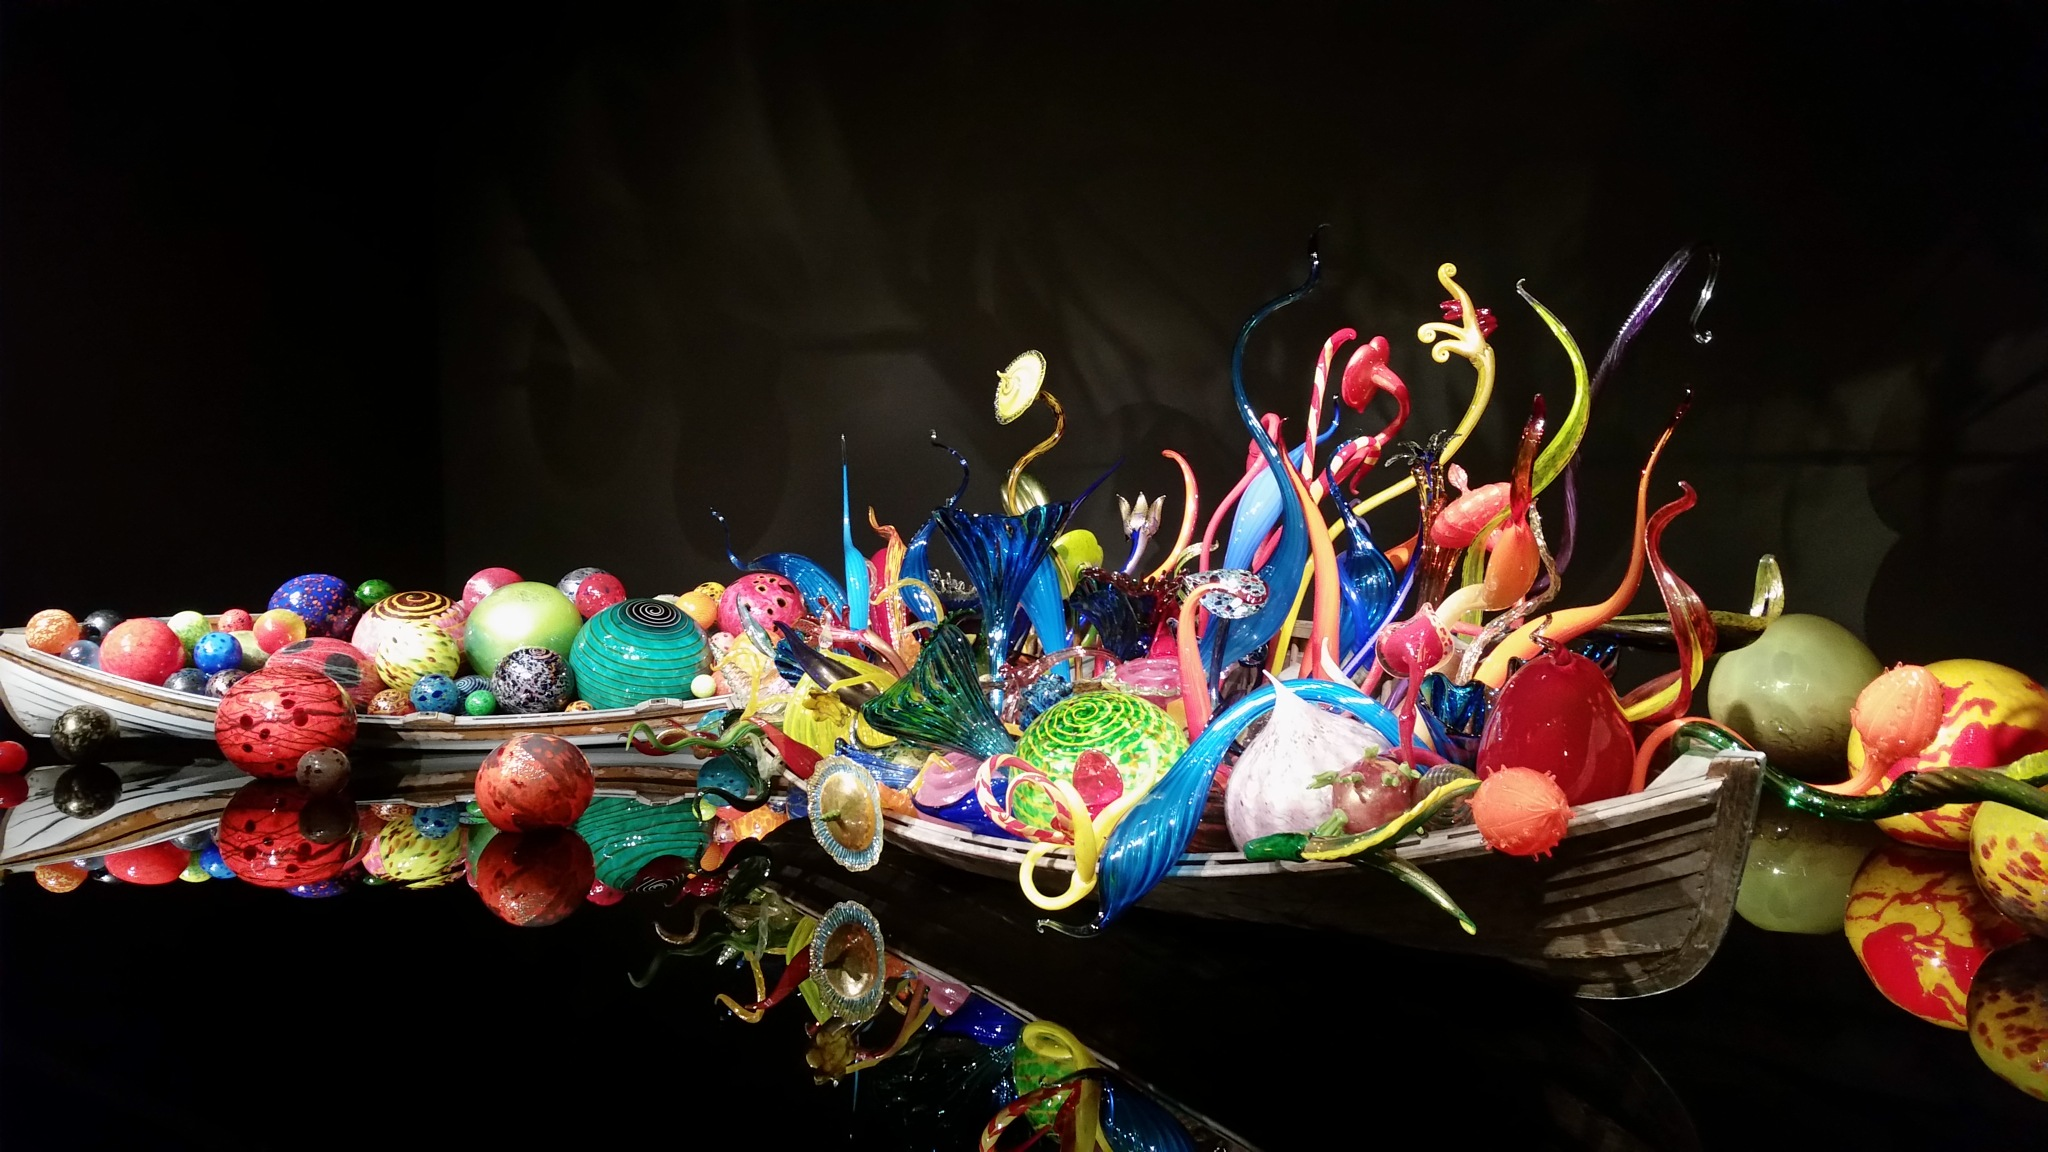 The Dale Chihuly Glass Museum in Seattle Washington one of the displays by B56